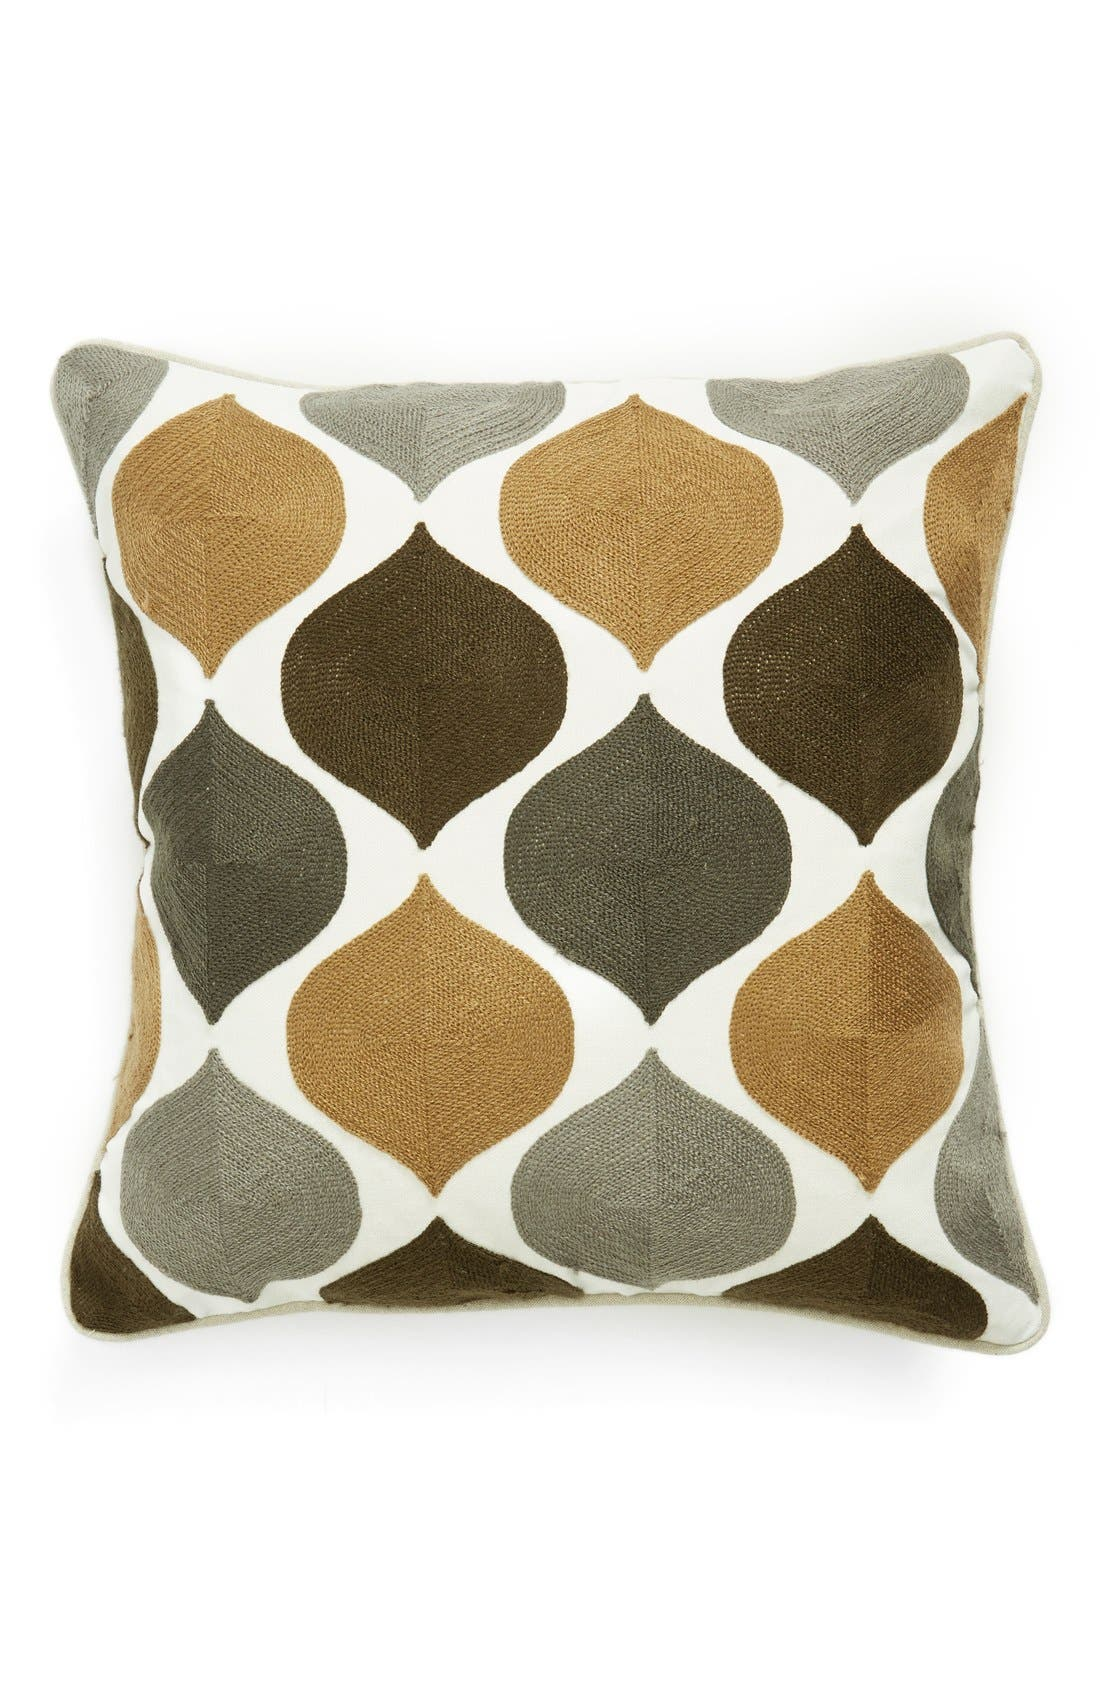 Alternate Image 1 Selected - Levtex 'Parma' Stitch Pillow